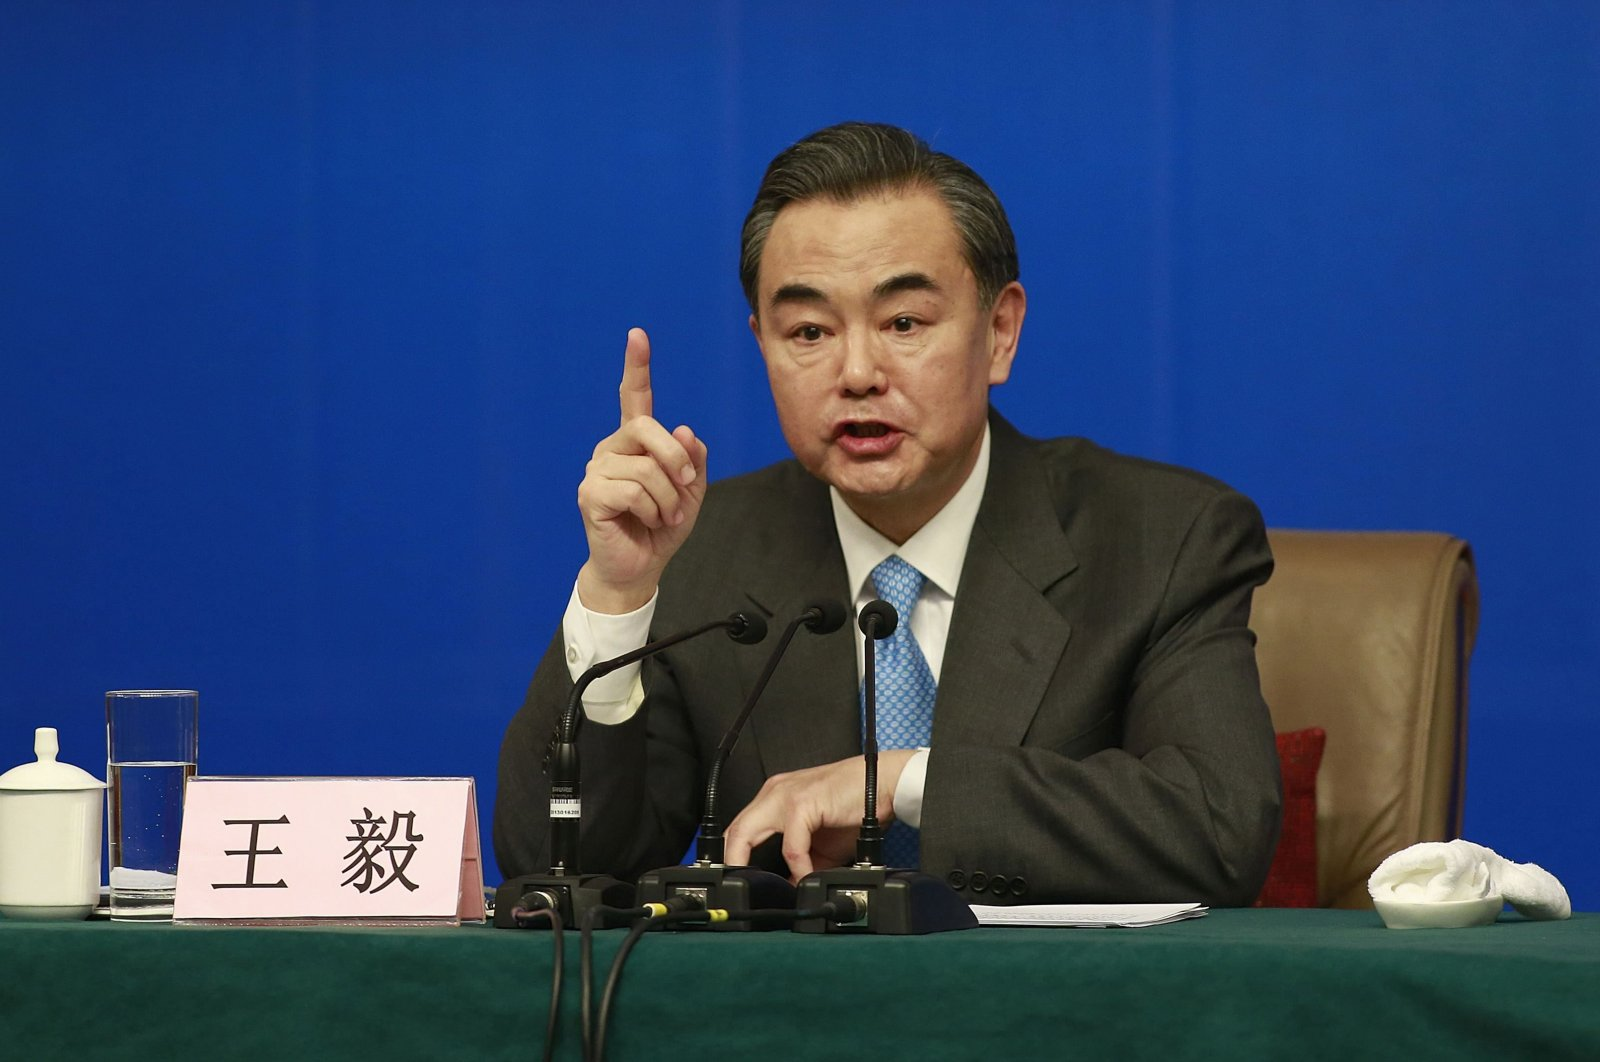 China's Foreign Minister Wang Yi gestures as he speaks during a news conference as part of the National People's Congress (NPC), in Beijing, March 8, 2014. (Reuters Photo)